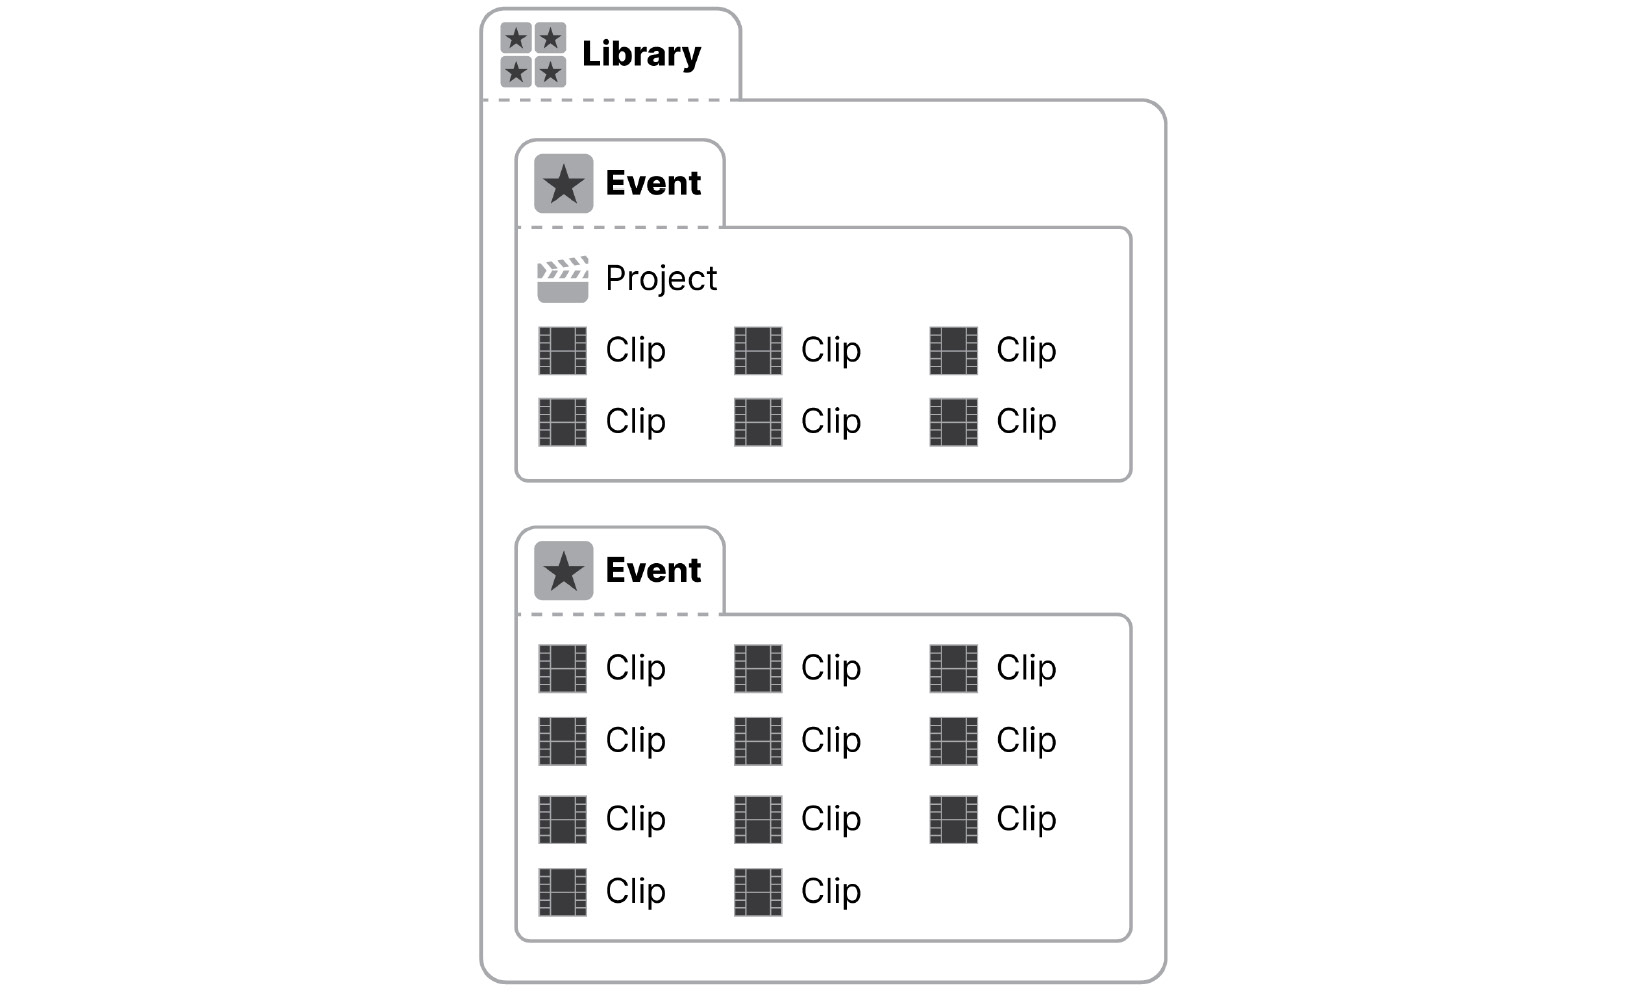 Figure 1.21: A simplified diagram that shows Clips and Projects inside Events, inside a Library